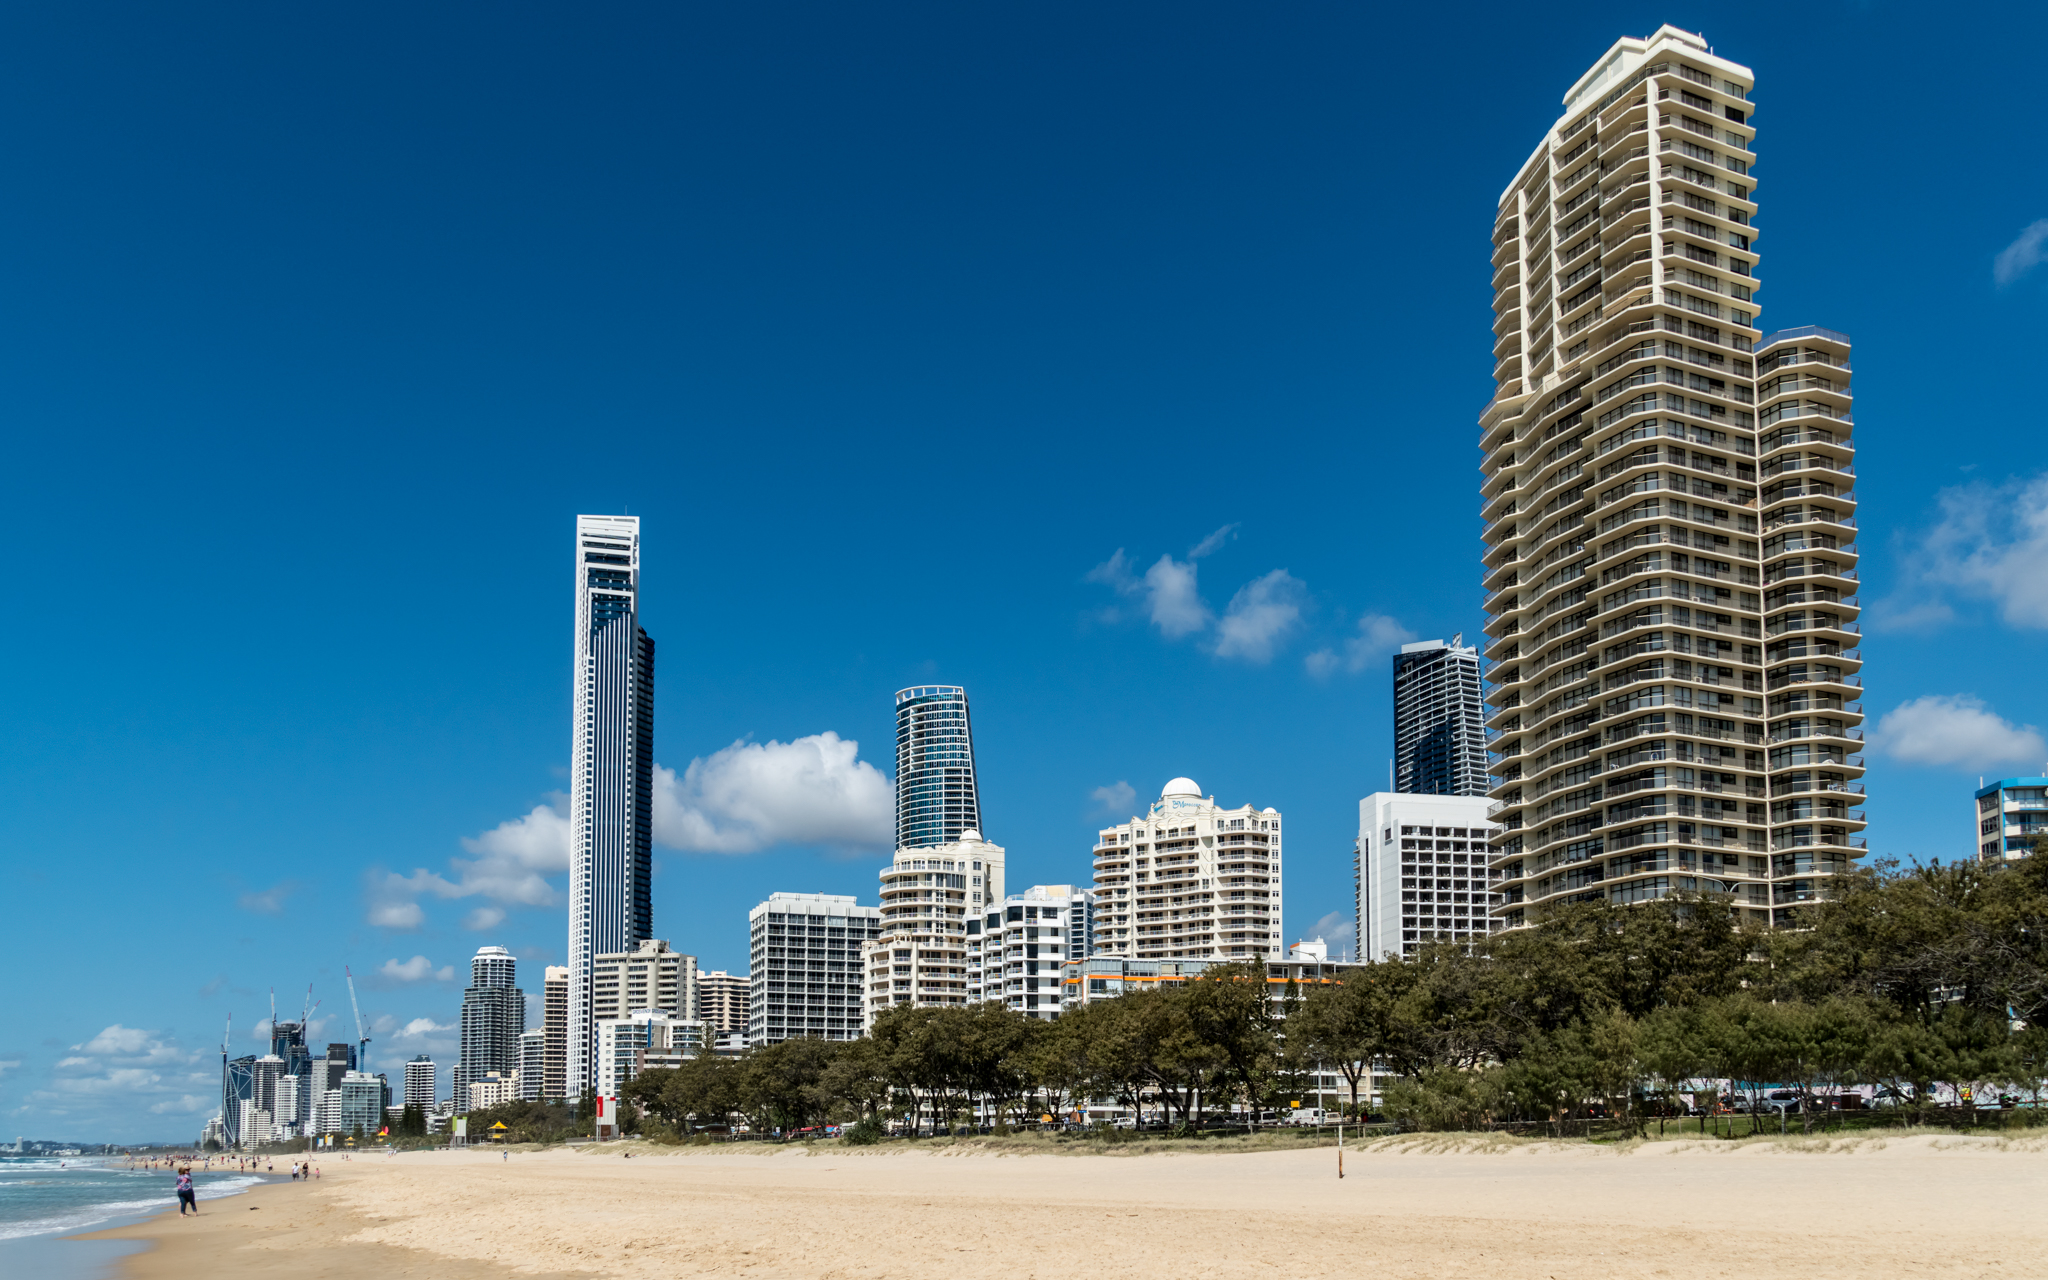 Surfers Paradise from the beach, Australia